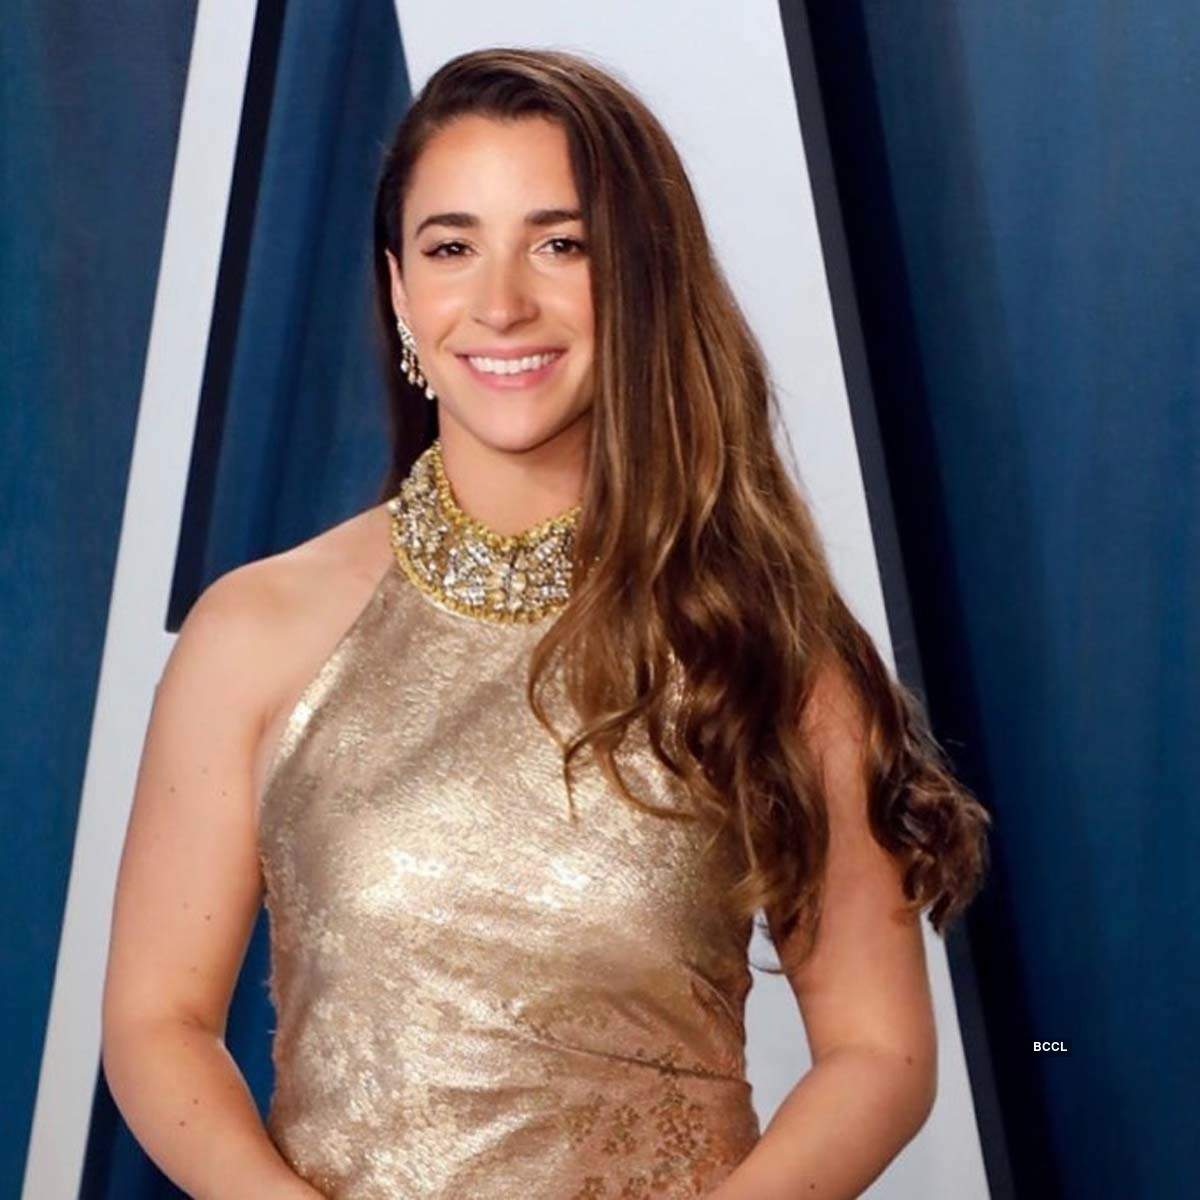 Mesmerising pictures of Olympic gymnast Aly Raisman